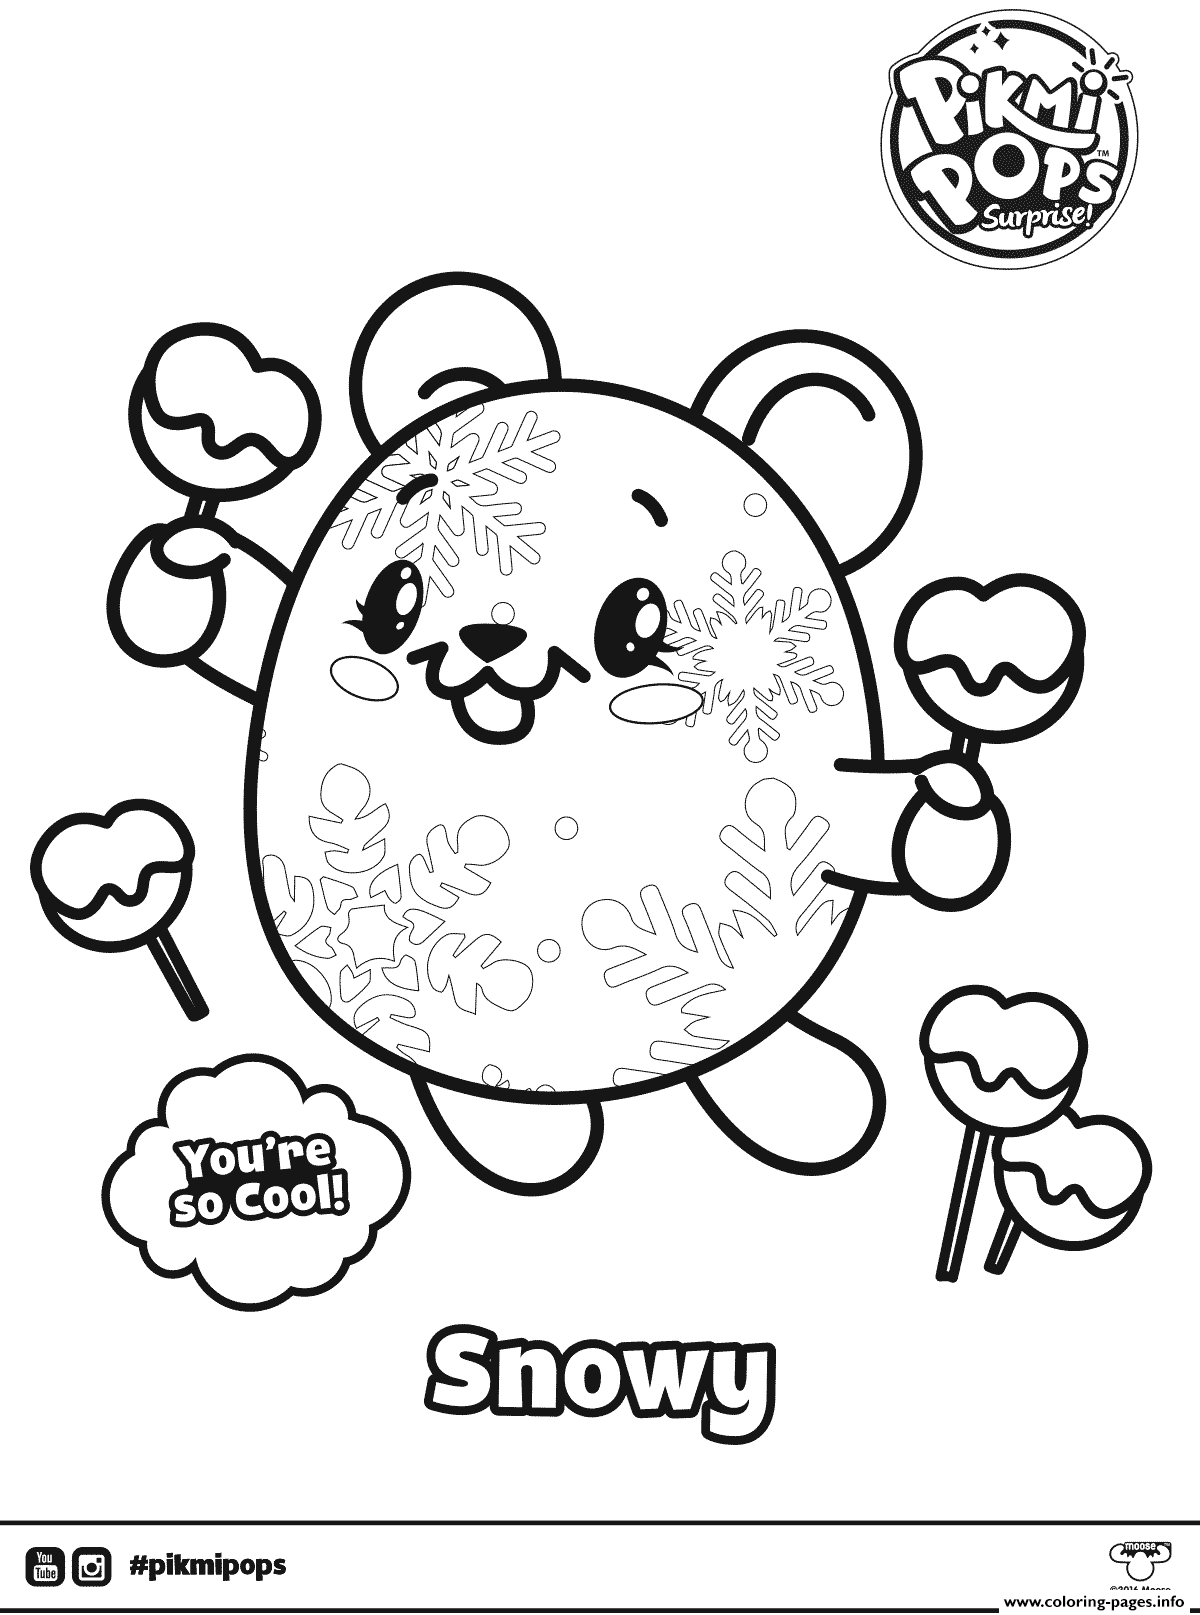 Pikmi Pops - Free Coloring Pages